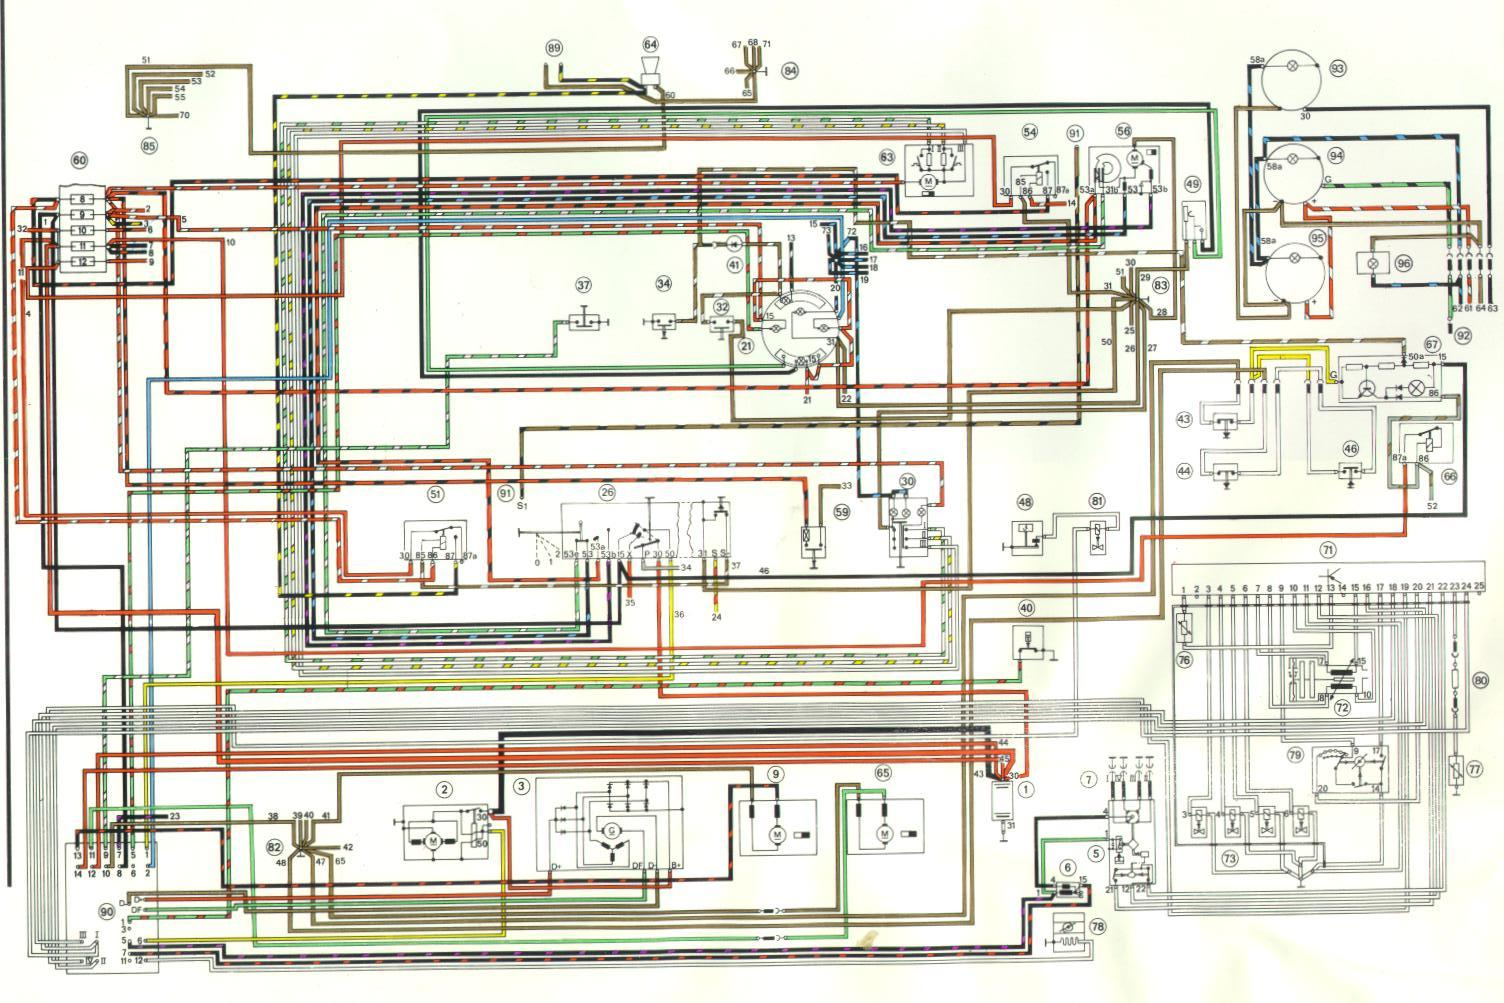 Porsche Wiring Diagrams - Wiring Diagram Third Level on